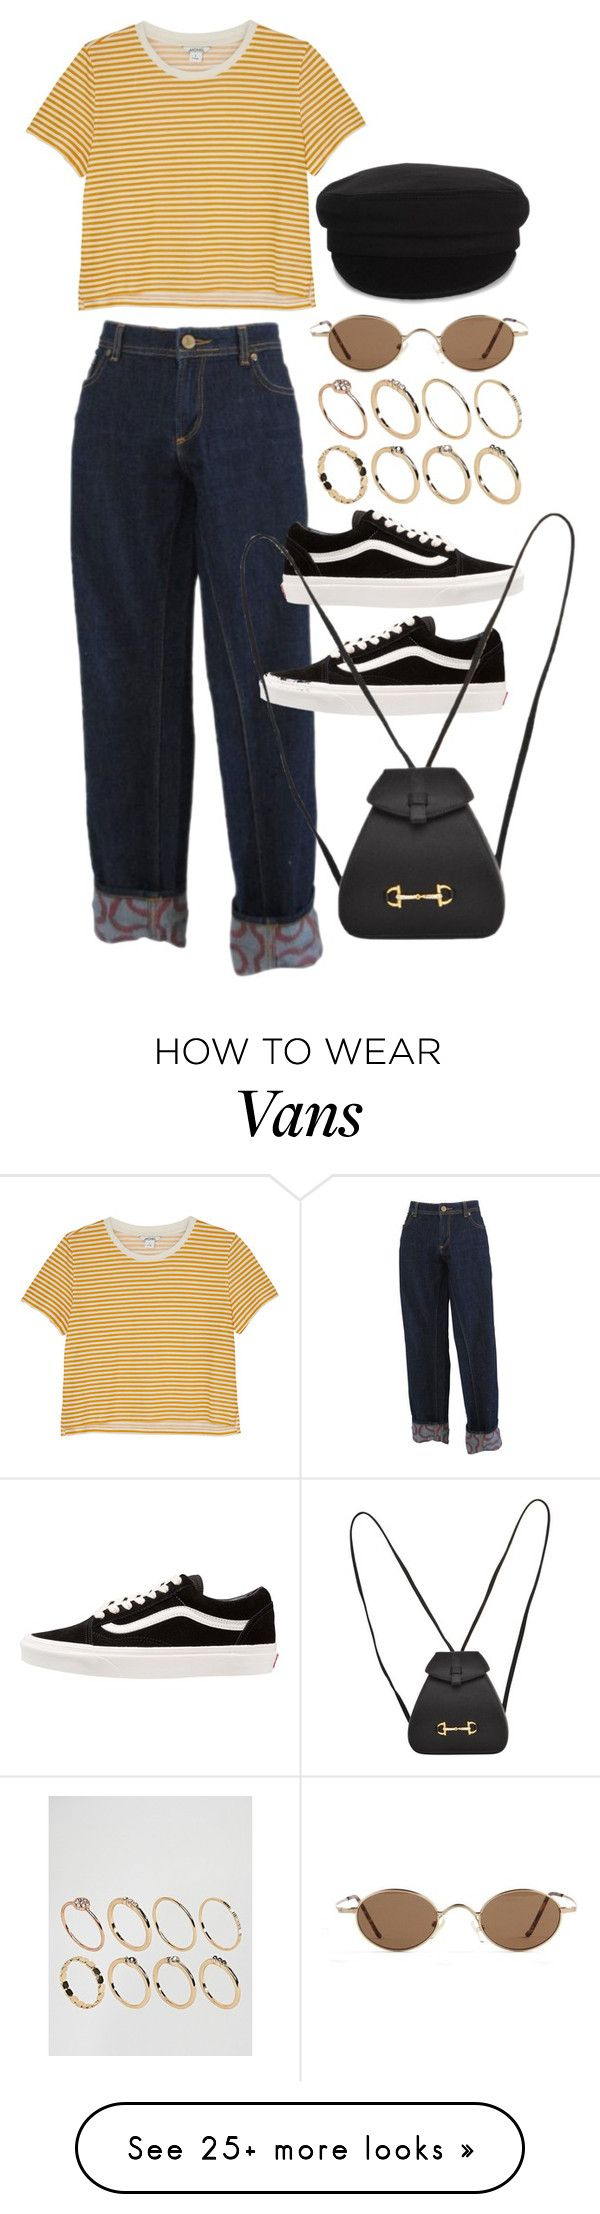 """""""Untitled #11390"""" by nikka-phillips on Polyvore featuring Vivienne Westwood, Monki, Vans, Gucci, Étoile Isabel Marant and ASOS"""